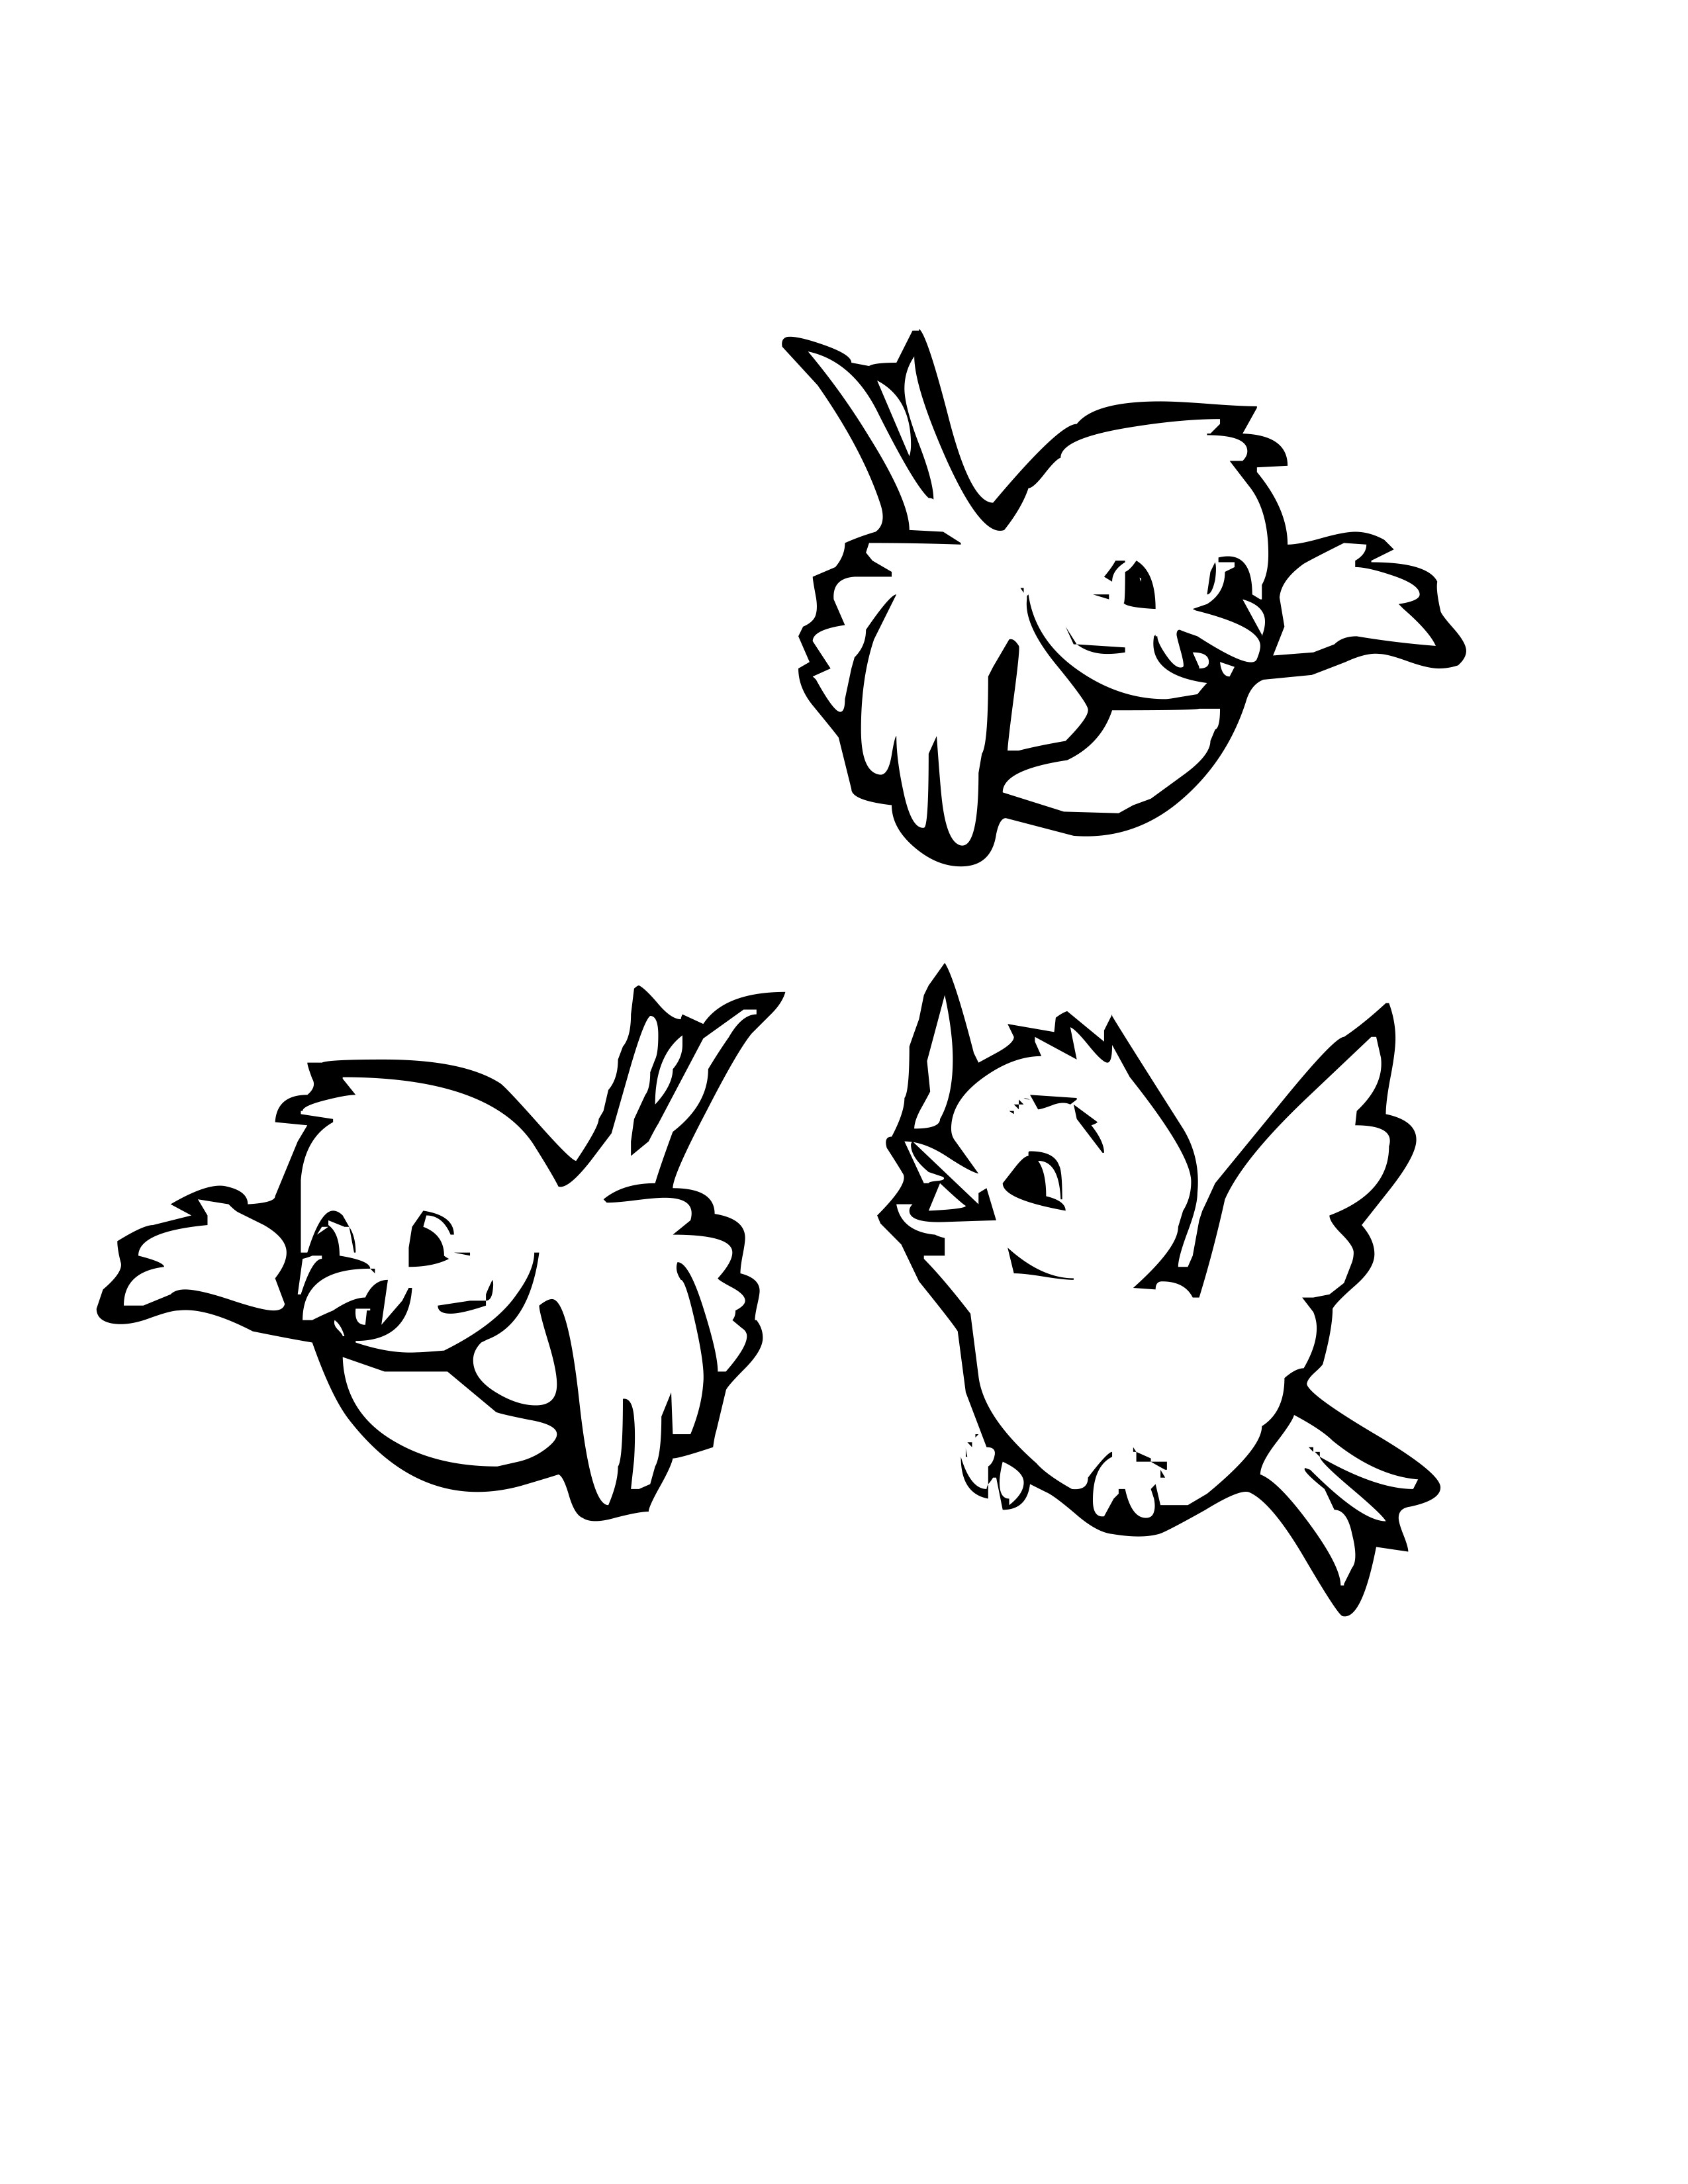 bird coloring pages cute bird coloring page wecoloringpagecom pages bird coloring